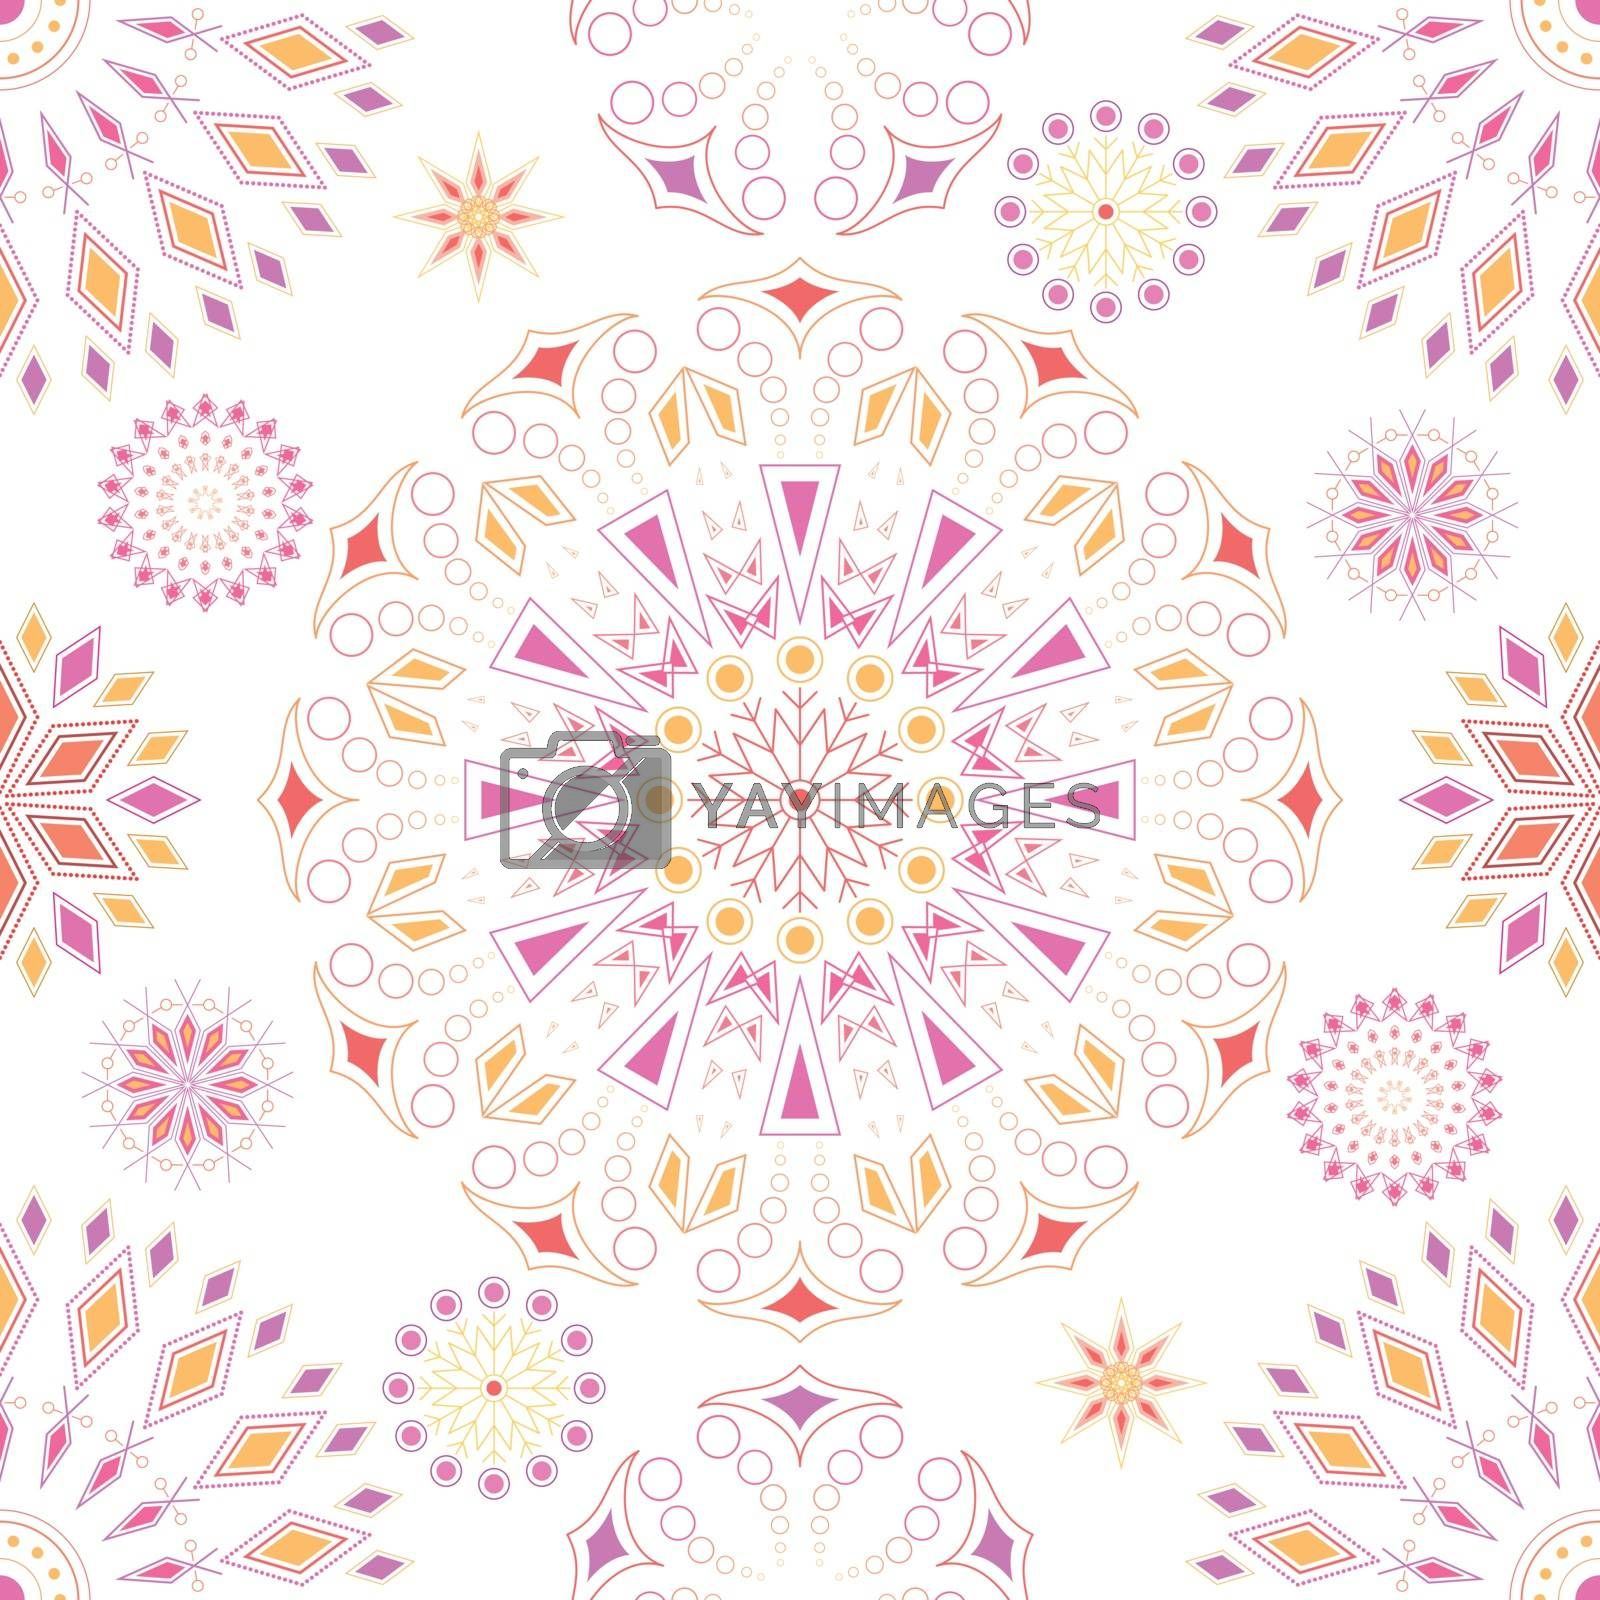 Rectangular beautiful repeating colorful ornament for design and background.